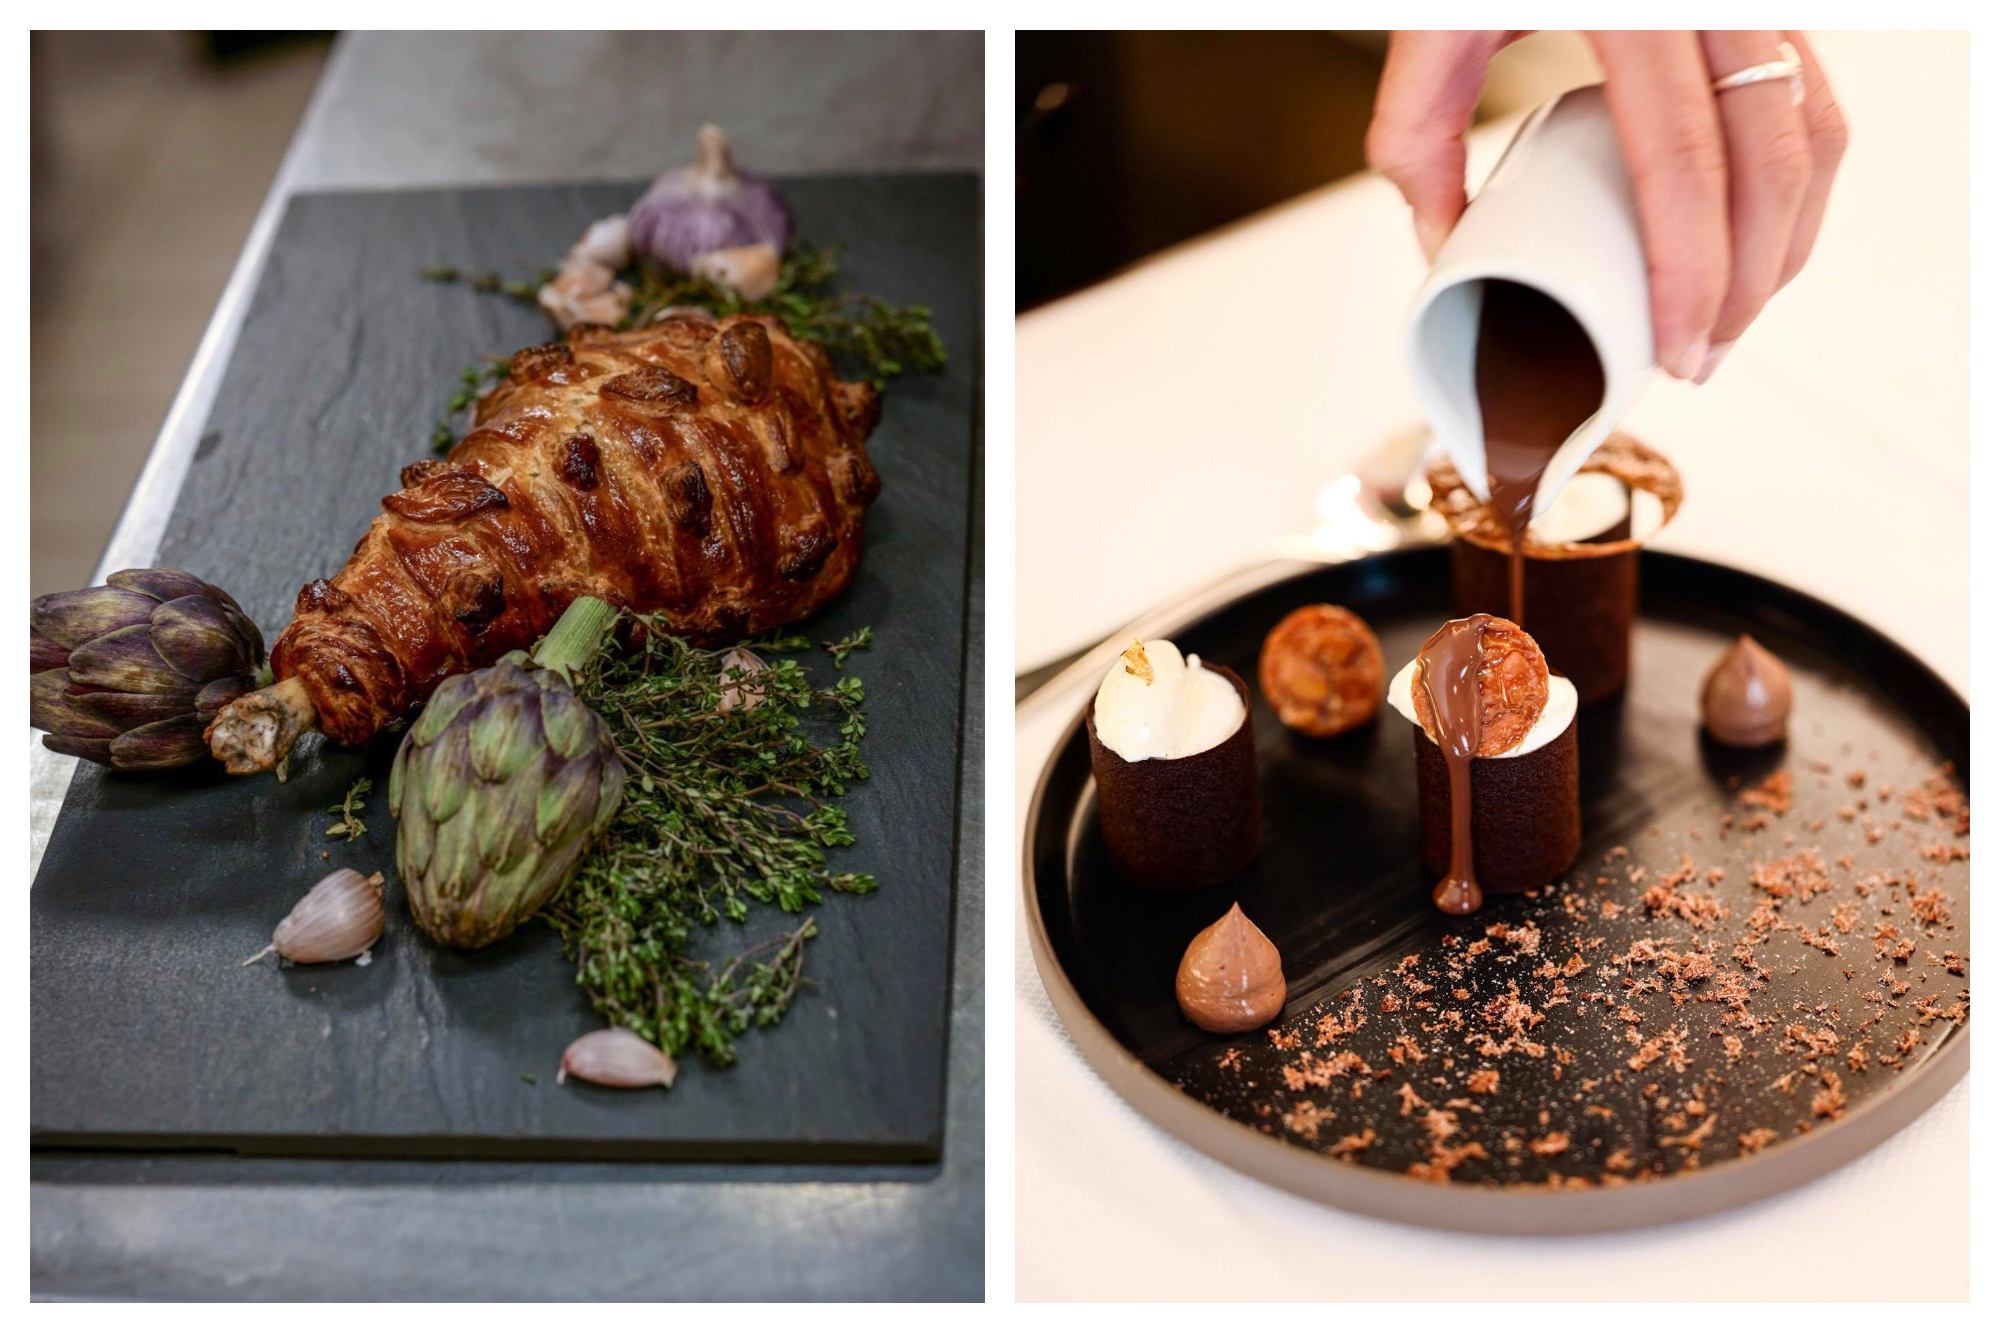 A large rectangular black plate with a leg of lamb cooked in pastry next to an artichoke, garlic and herbs (left). A plate with a version of the dessert La Dame Blanche, cylinders of chocolate with a white interior, spots of chocolate mousse, chocolate powder and a hand is pouring chocolate sauce over the top from a white jug (right).